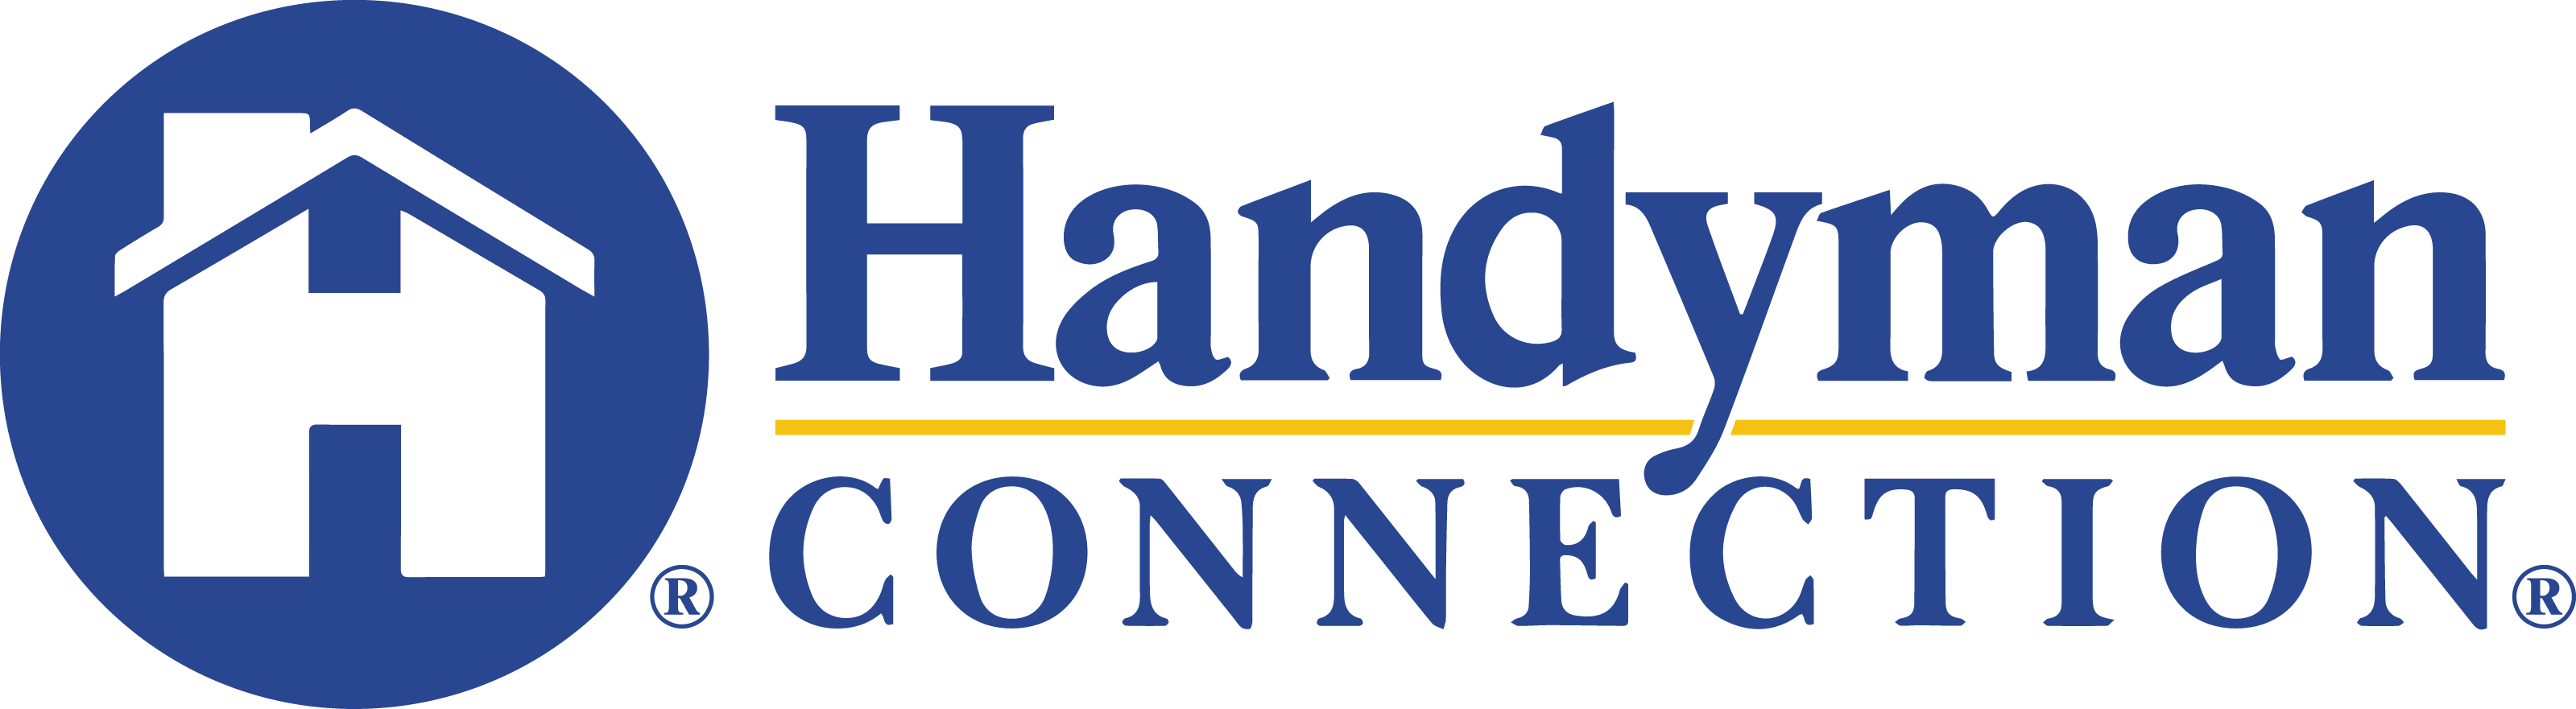 Handyman Connection of Etobicoke, ON